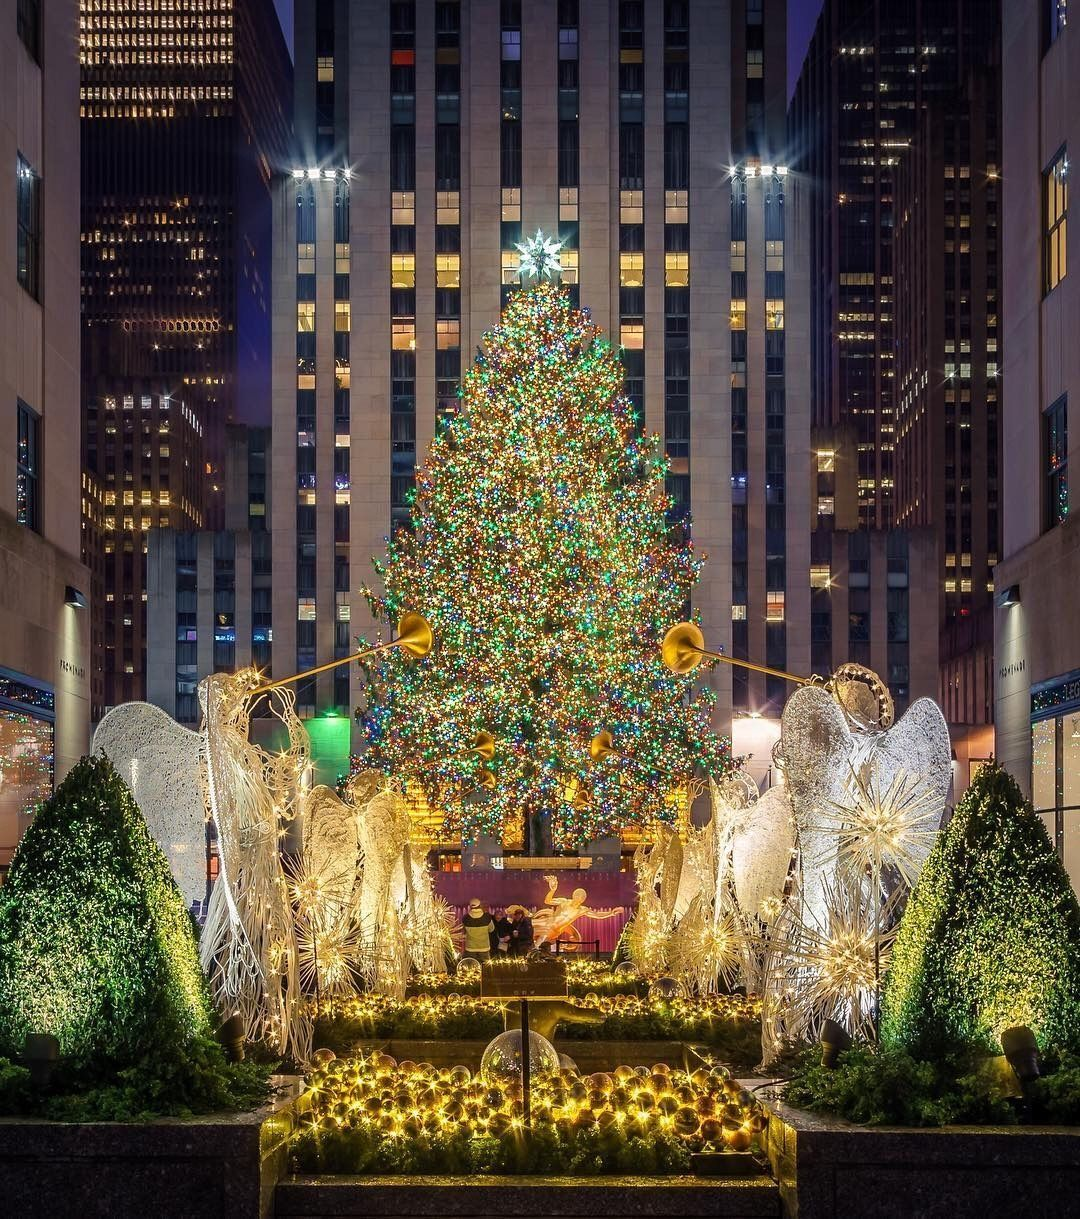 Rockefeller Center Christmas Tree 🎄 by nathanmphotos in